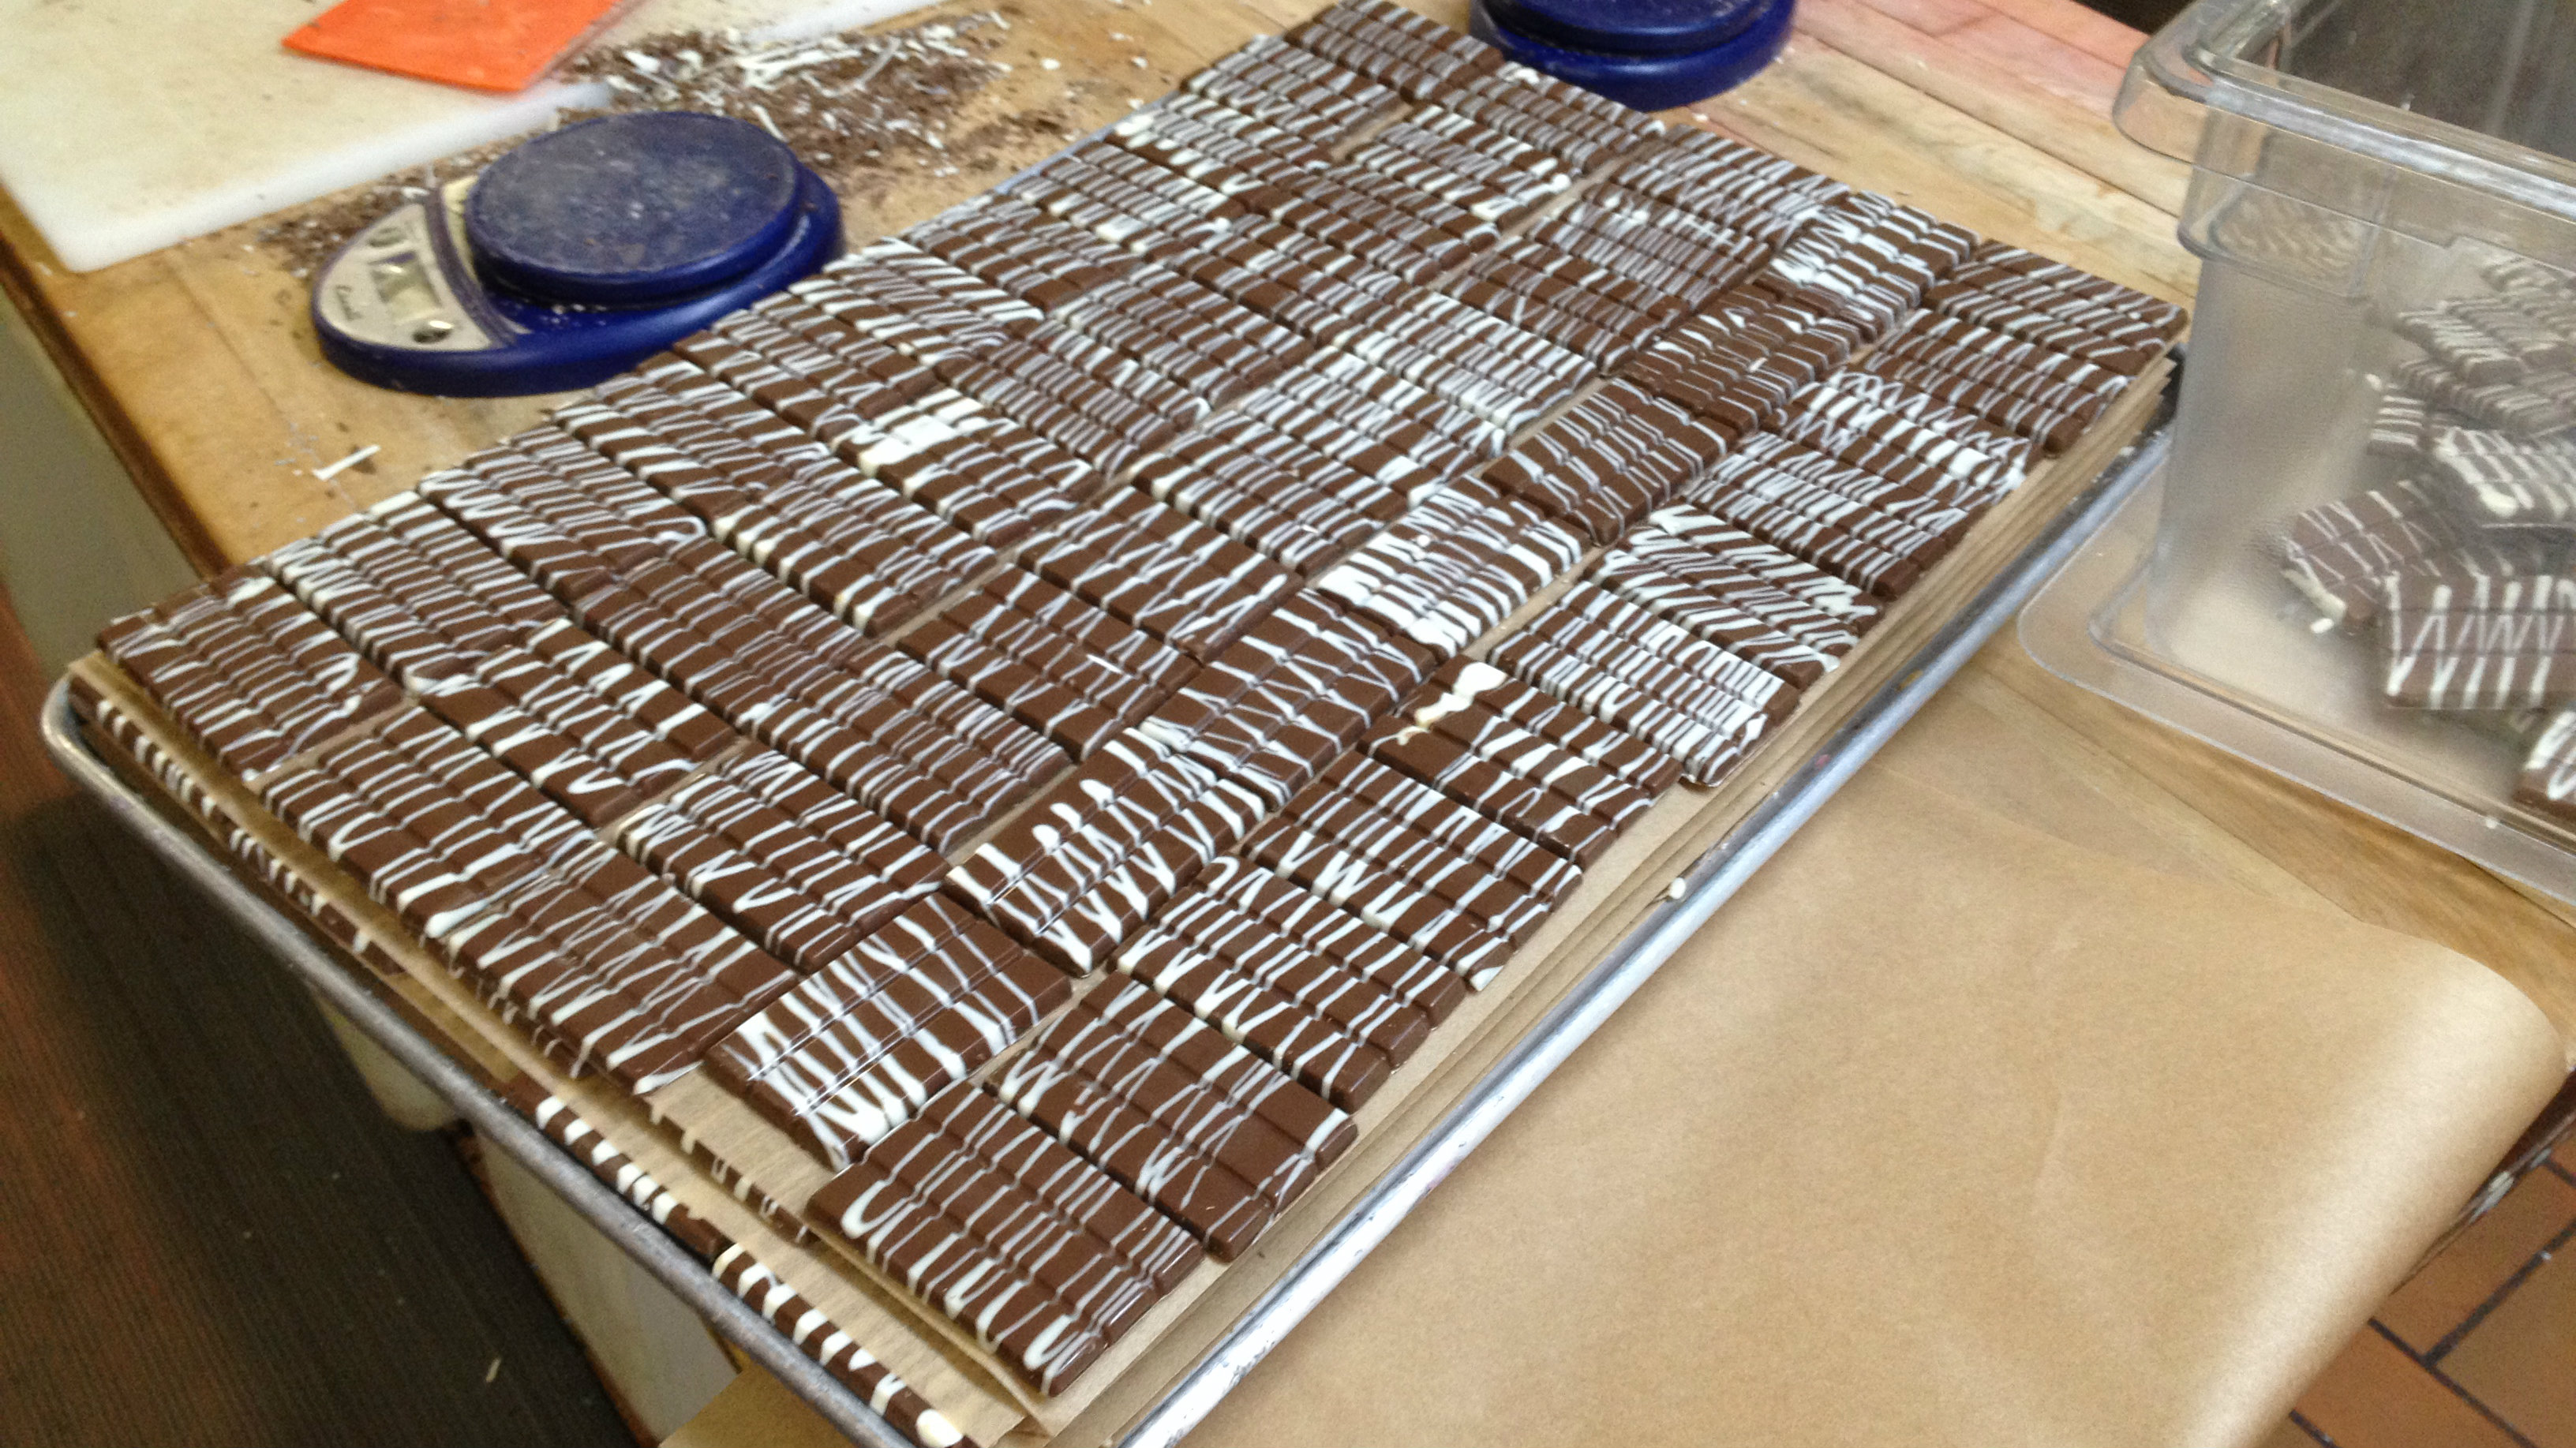 <p>Mile Higher chocolate bars made at Incredibles kitchen in Denver ready to be packaged. </p>